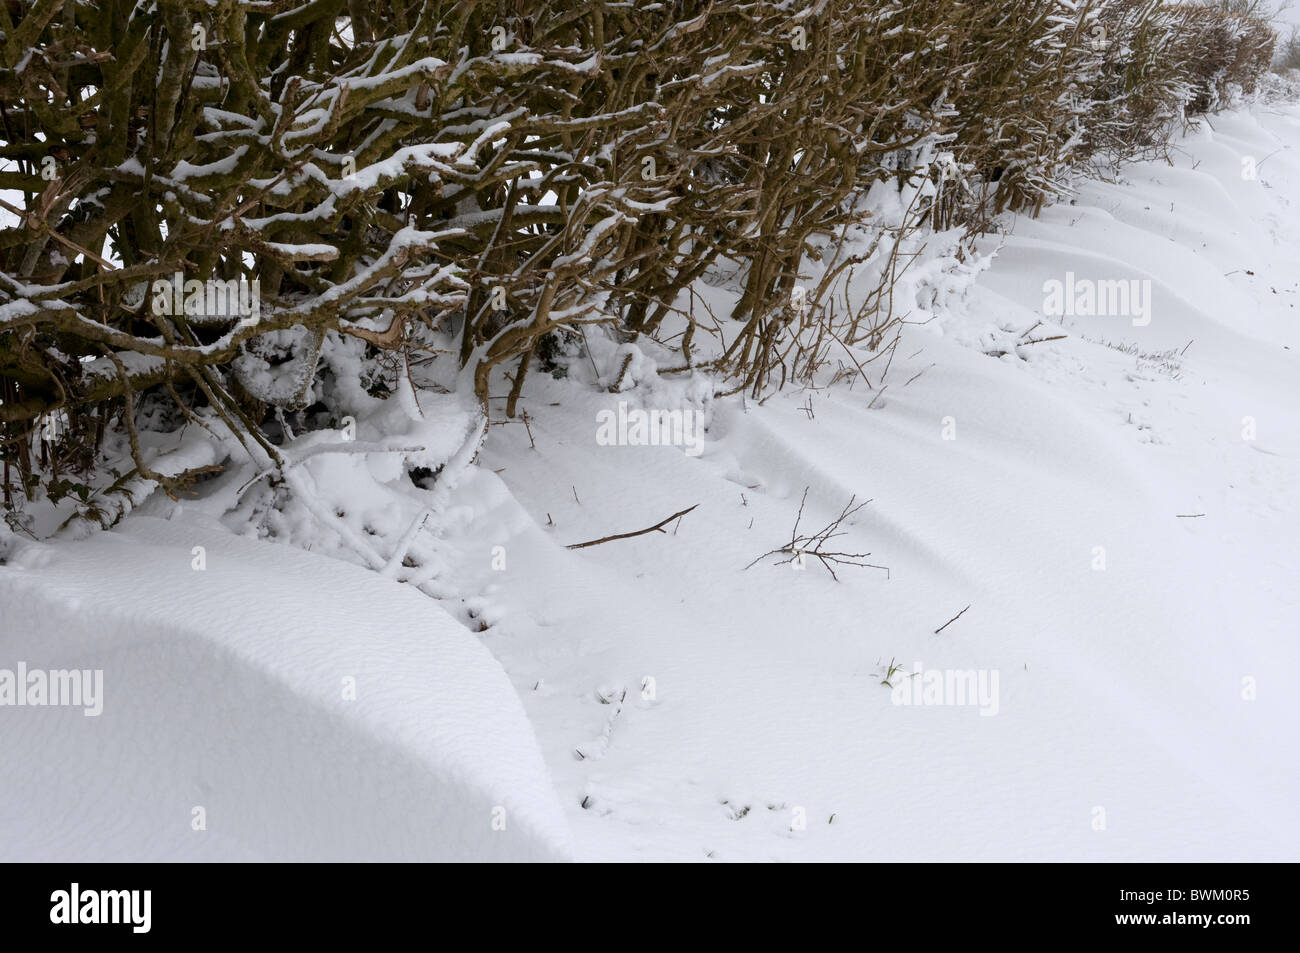 Close up of a snowdrift at the bottom of a hedge - Stock Image